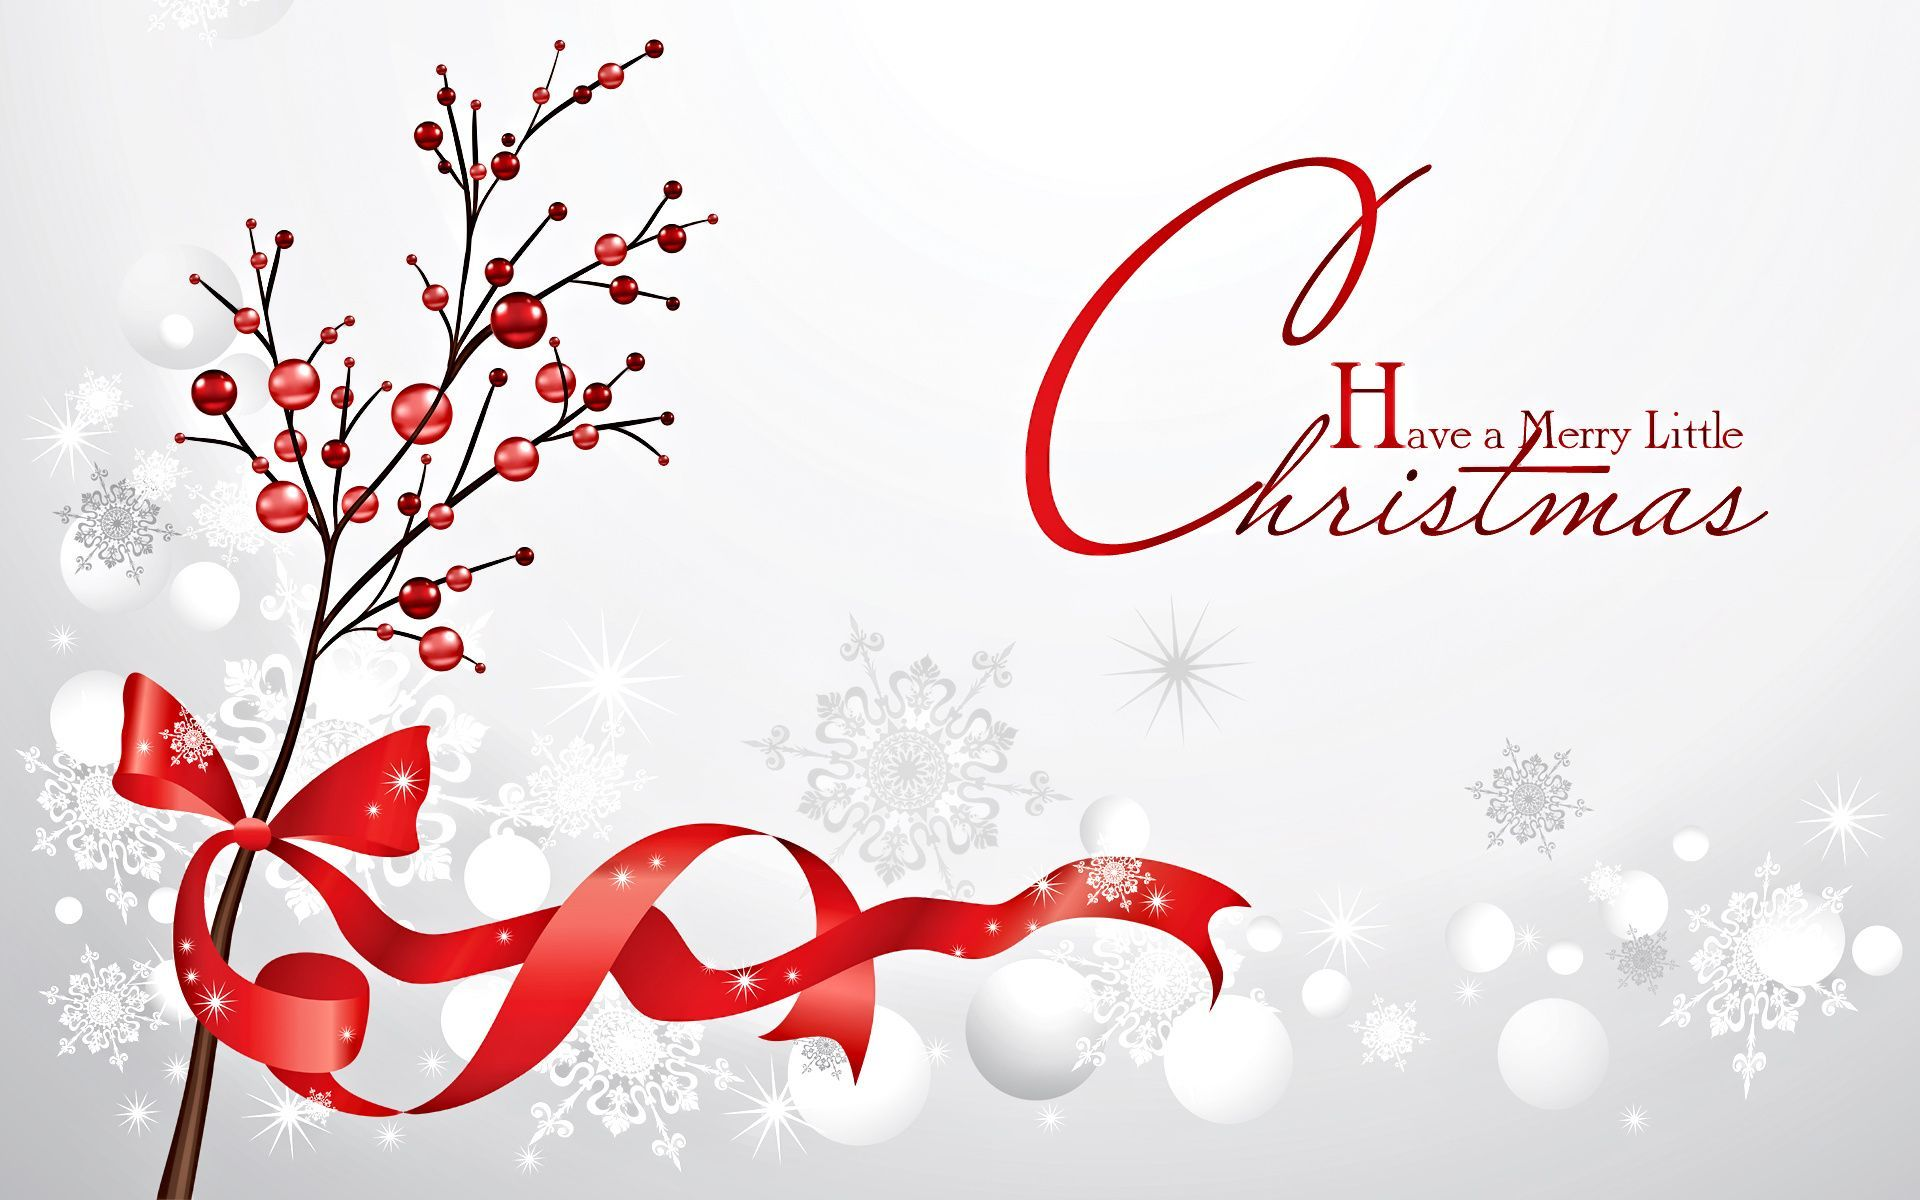 HD Merry Christmas Wallpaper Red 2016.